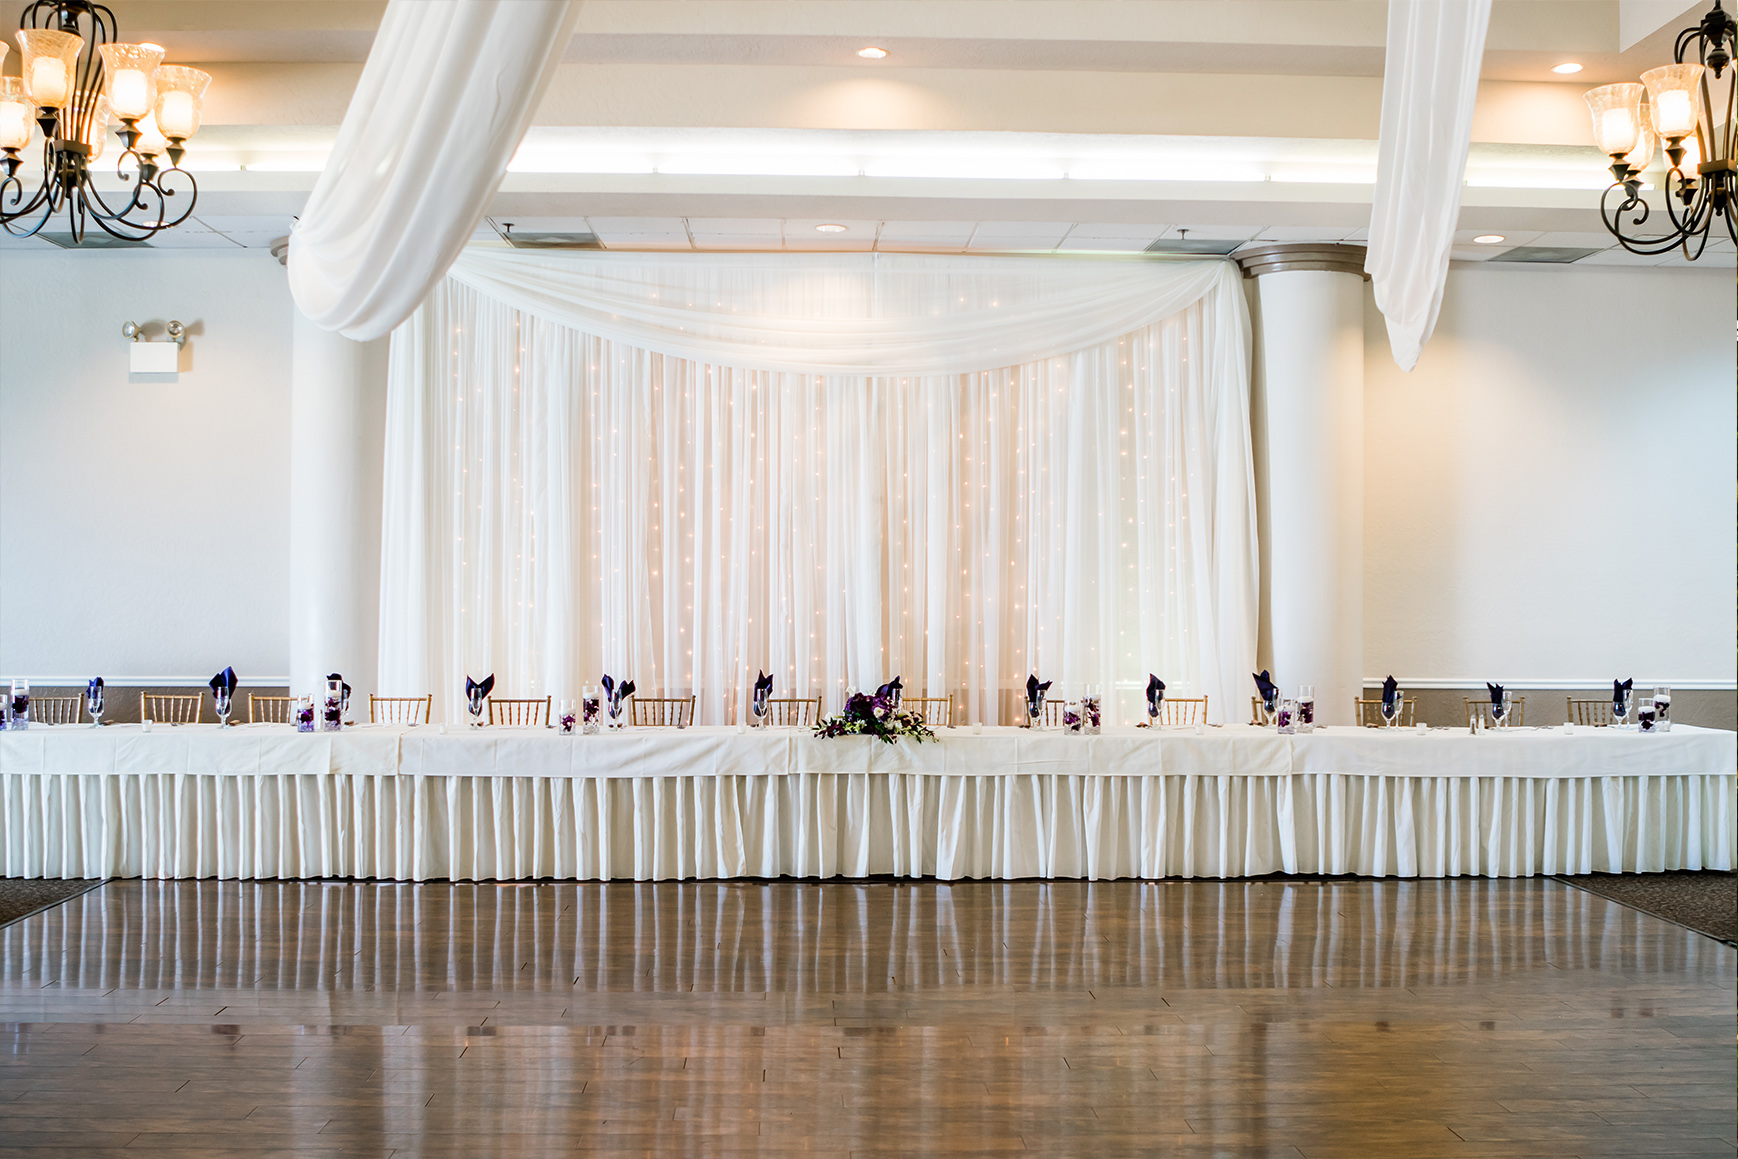 Banquet Hall - Fresno - Fresno, California - Frenso County - Wedgewood Weddngs